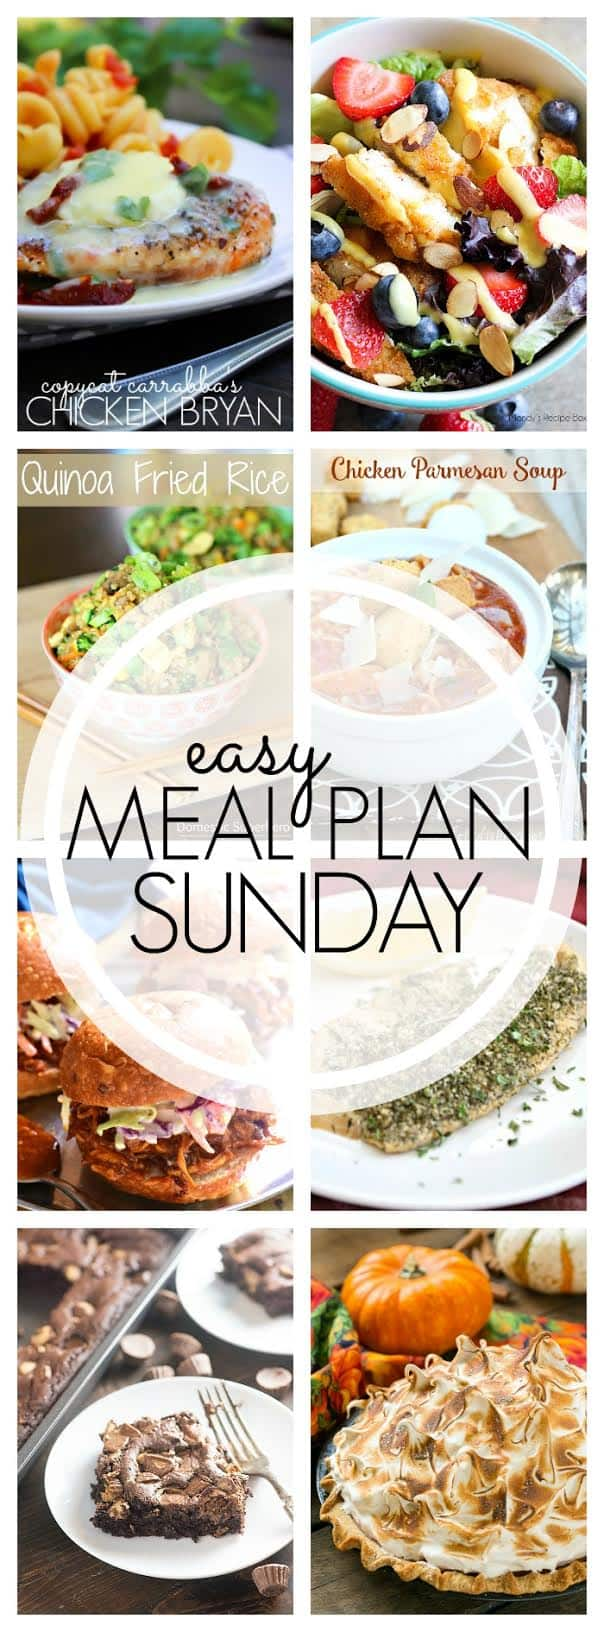 The BEST Easy Meal Plan...guaranteed to make your week easier! 6 dinners, 1 breakfast, and 2 desserts...all family tested and approved!